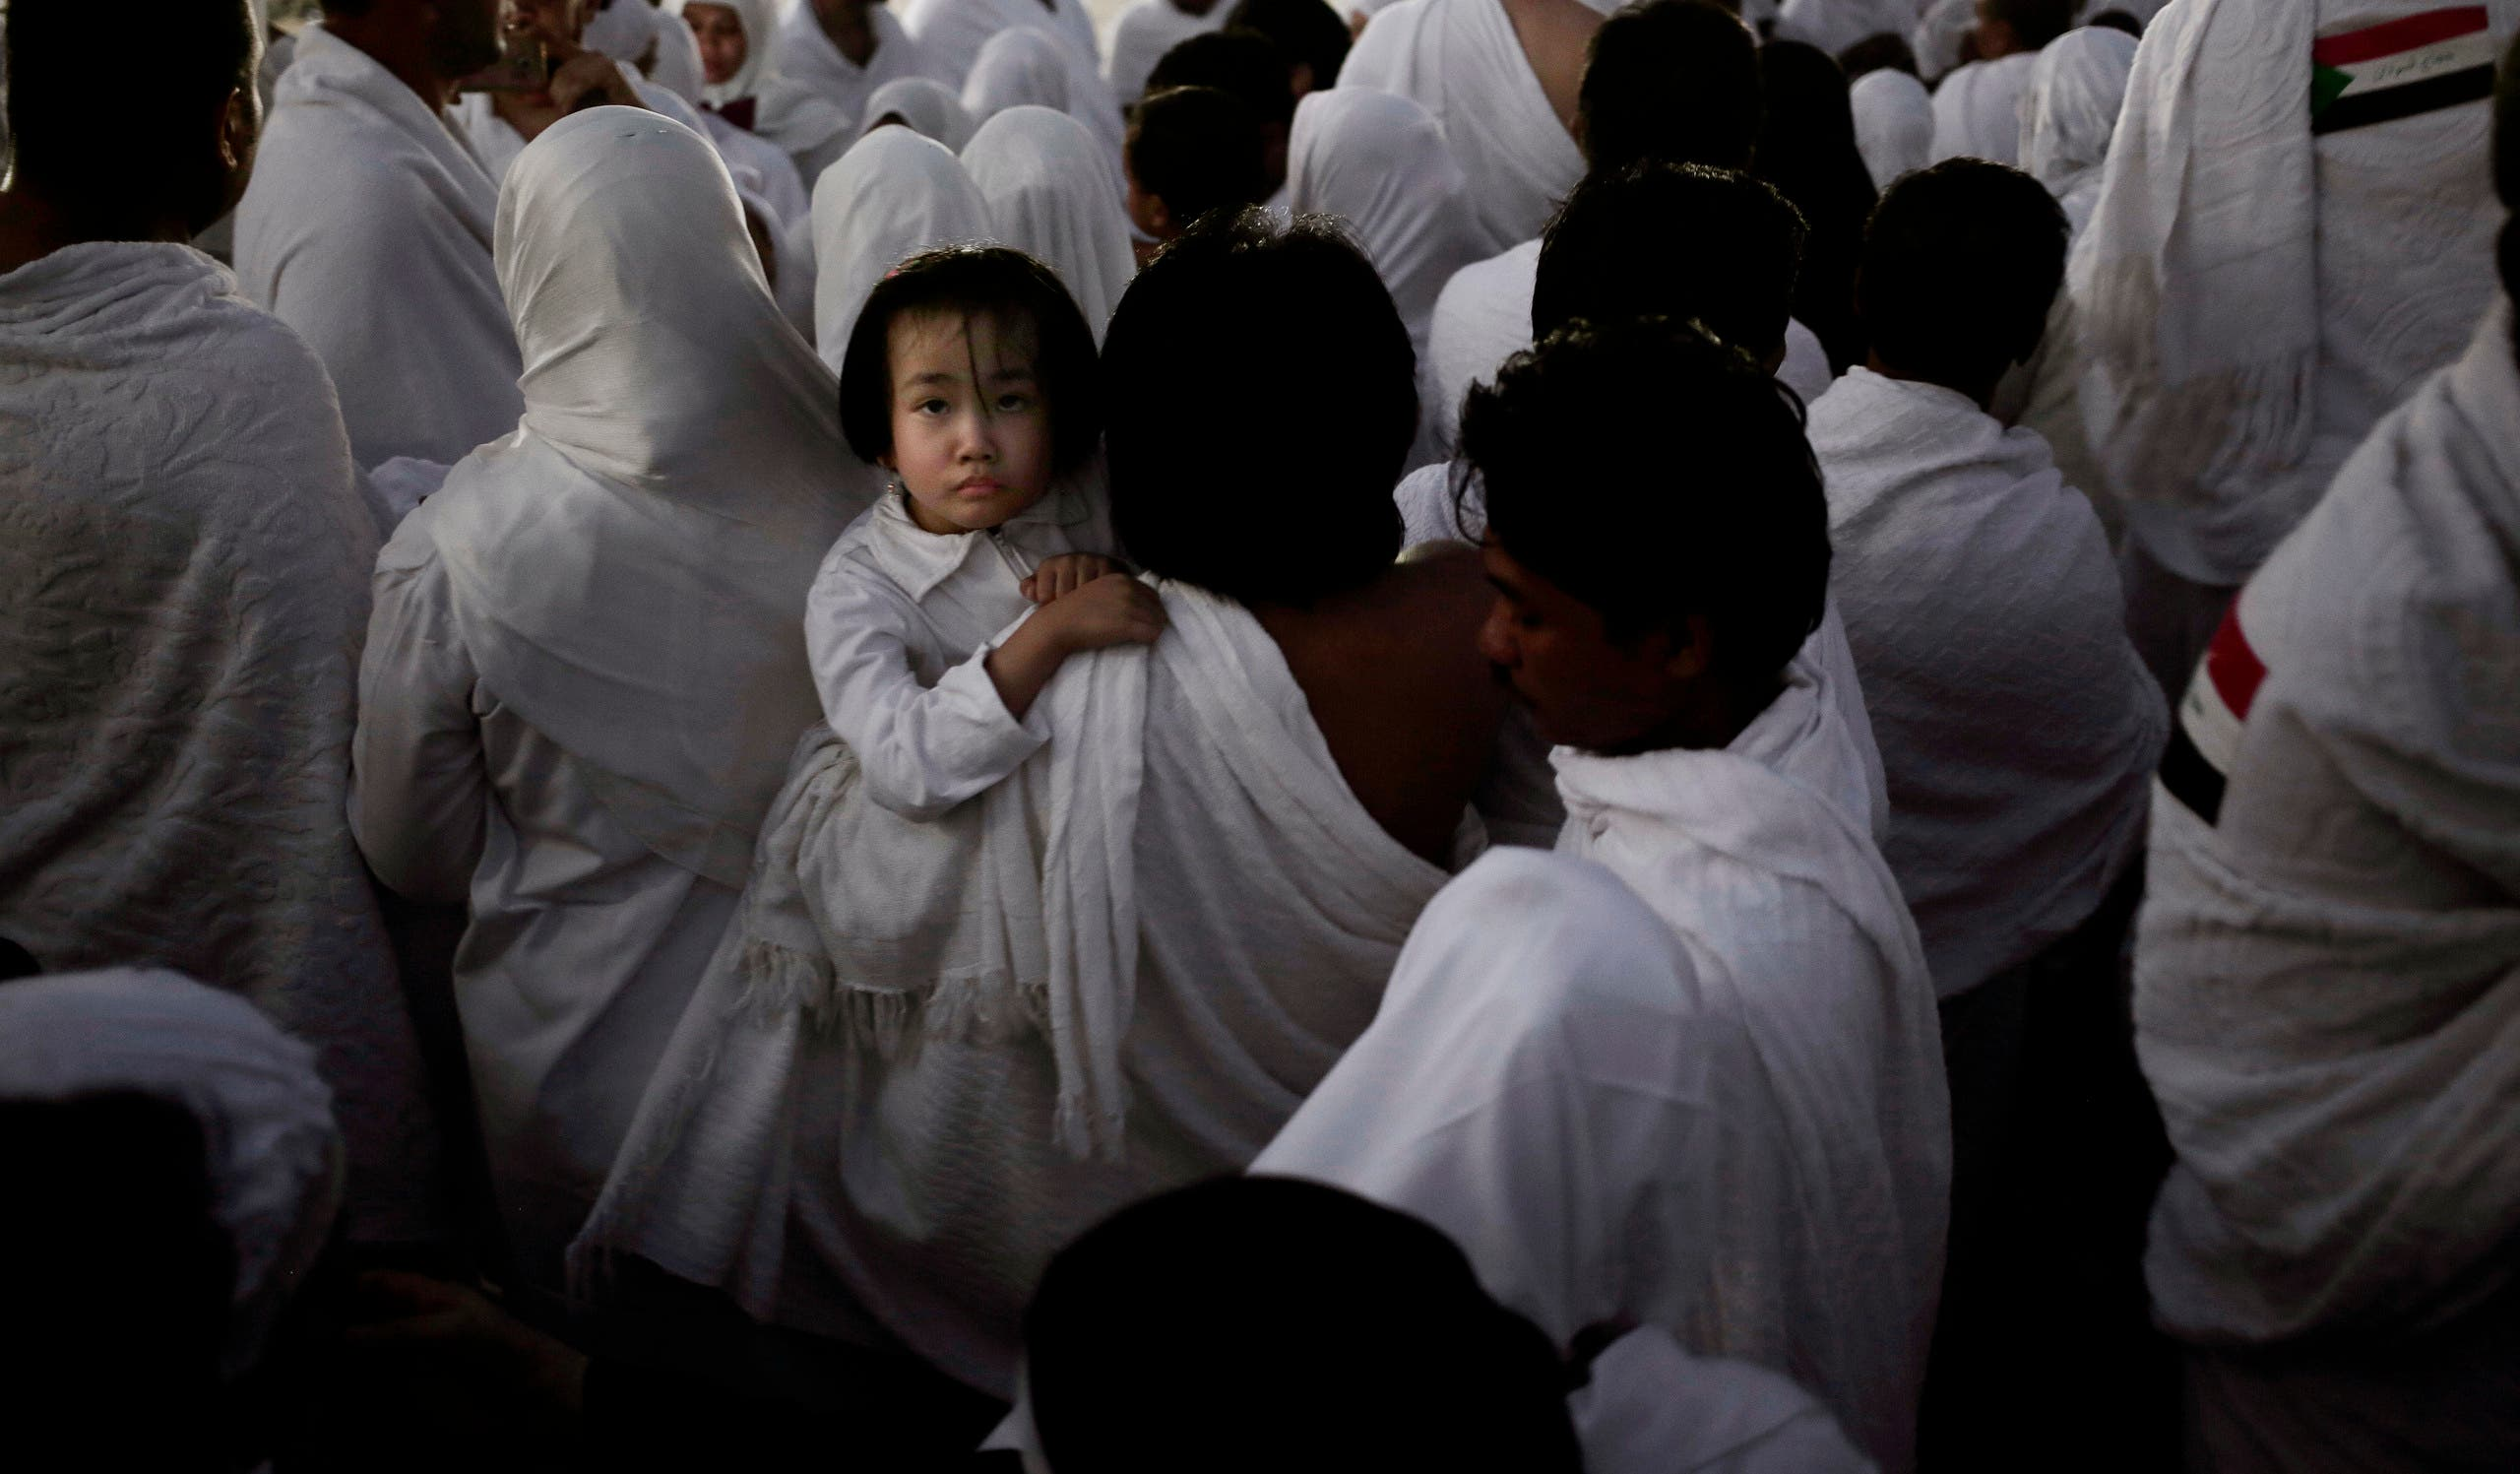 An Indonesian father carries his daughter through the crowd after reaching the top of a rocky hill known as Mountain of Mercy, on the Plain of Arafat, during the annual hajj pilgrimage, ahead of sunrise near the holy city of Mecca, Saudi Arabia, Sunday, Sept. 11, 2016. Mount Arafat, marked by a white pillar, is where Islam's Prophet Muhammad is believed to have delivered his last sermon to tens of thousands of followers some 1,400 years ago, calling on Muslims to unite. (AP)